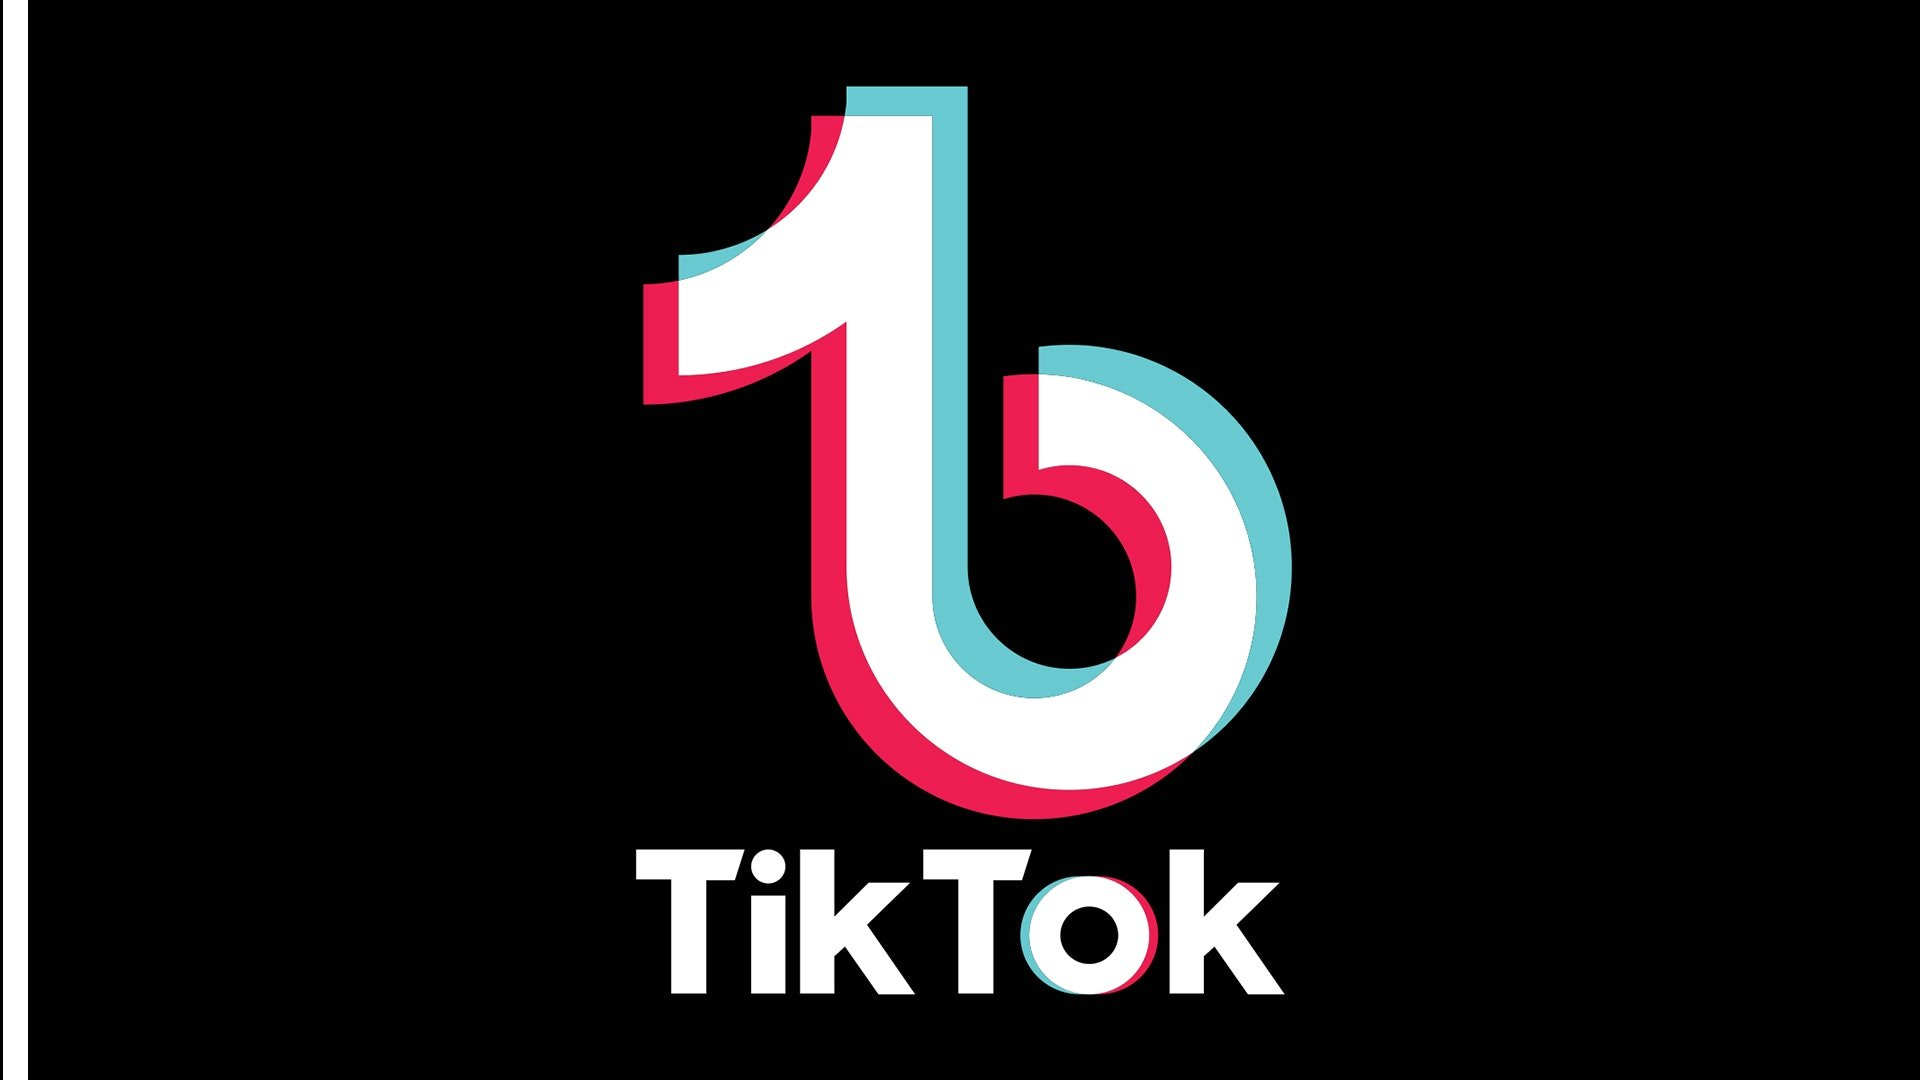 How to Decorate Your Pc wallpaper With TIK Tok Wallpaper   Clear 1920x1080